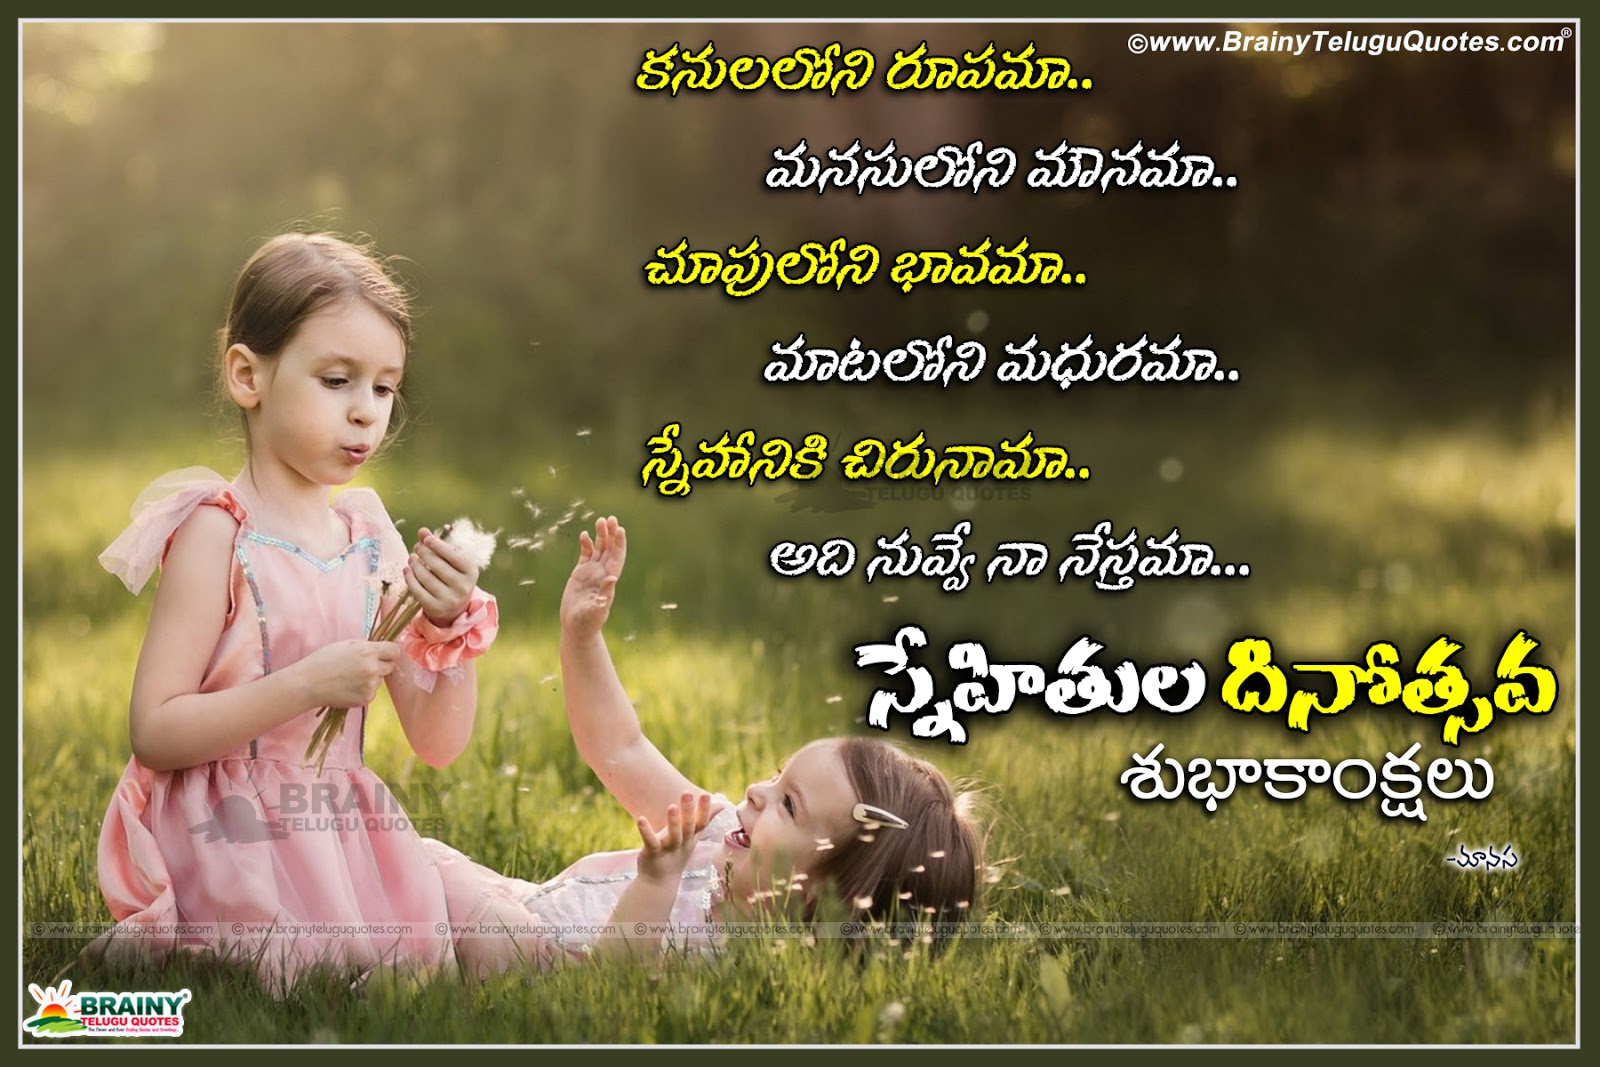 Friendship day telugu quotes wishes greetings images wallpapers friendship day telugu quotes wishes greetings images wallpapers pictures friendship day pictures in telugu kristyandbryce Image collections